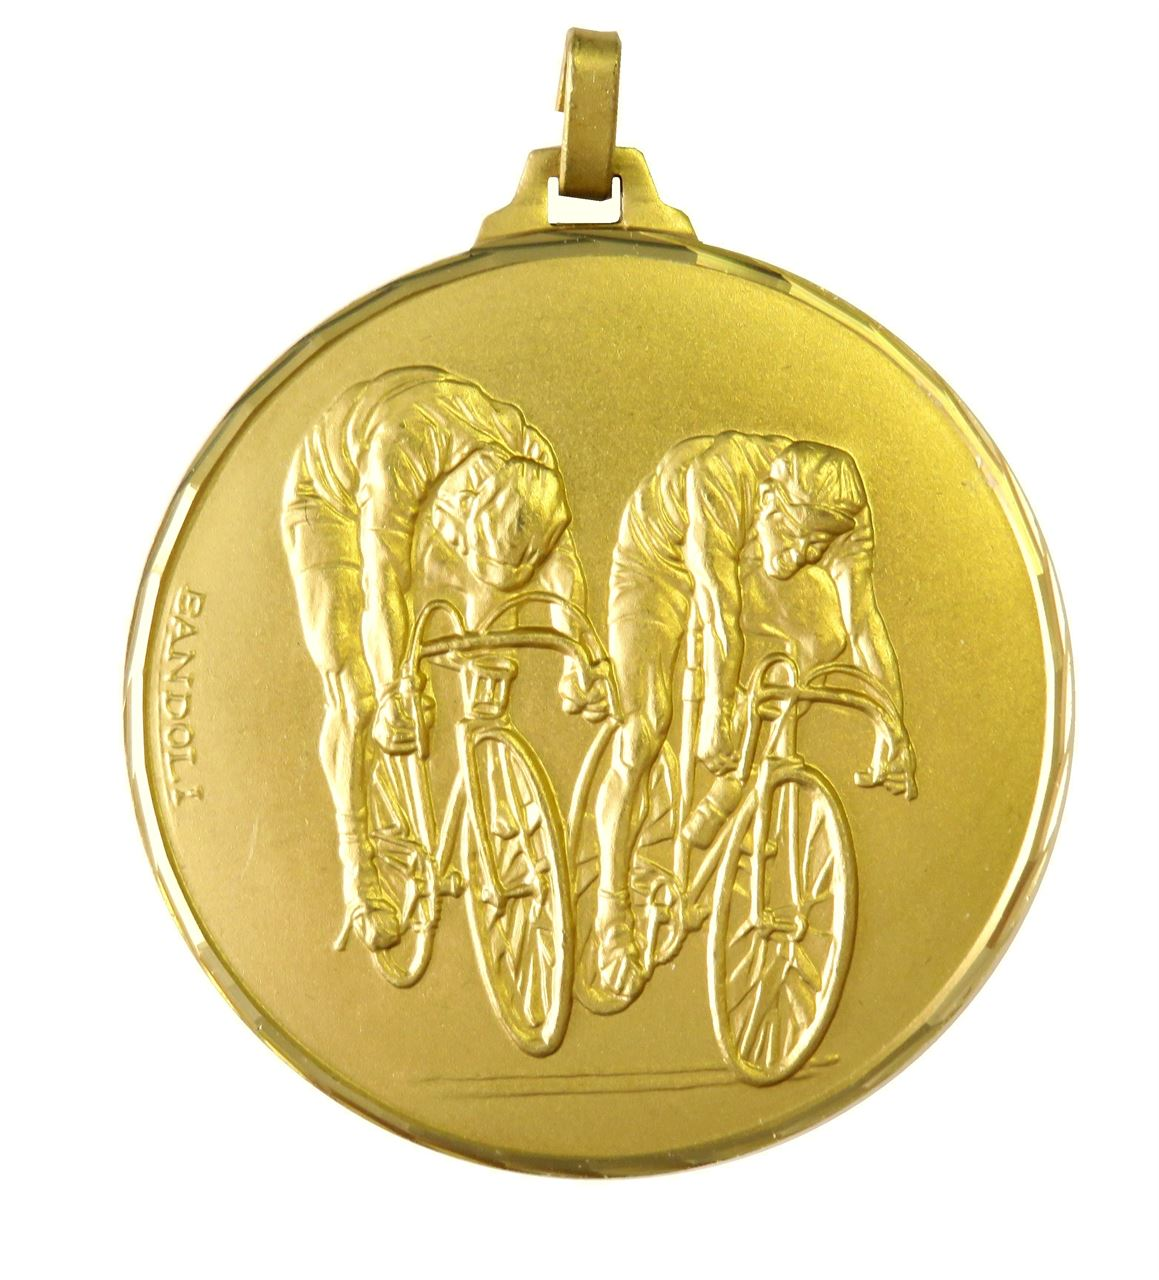 Gold Faceted Cycle Race Medal (size: 52mm) - 194F